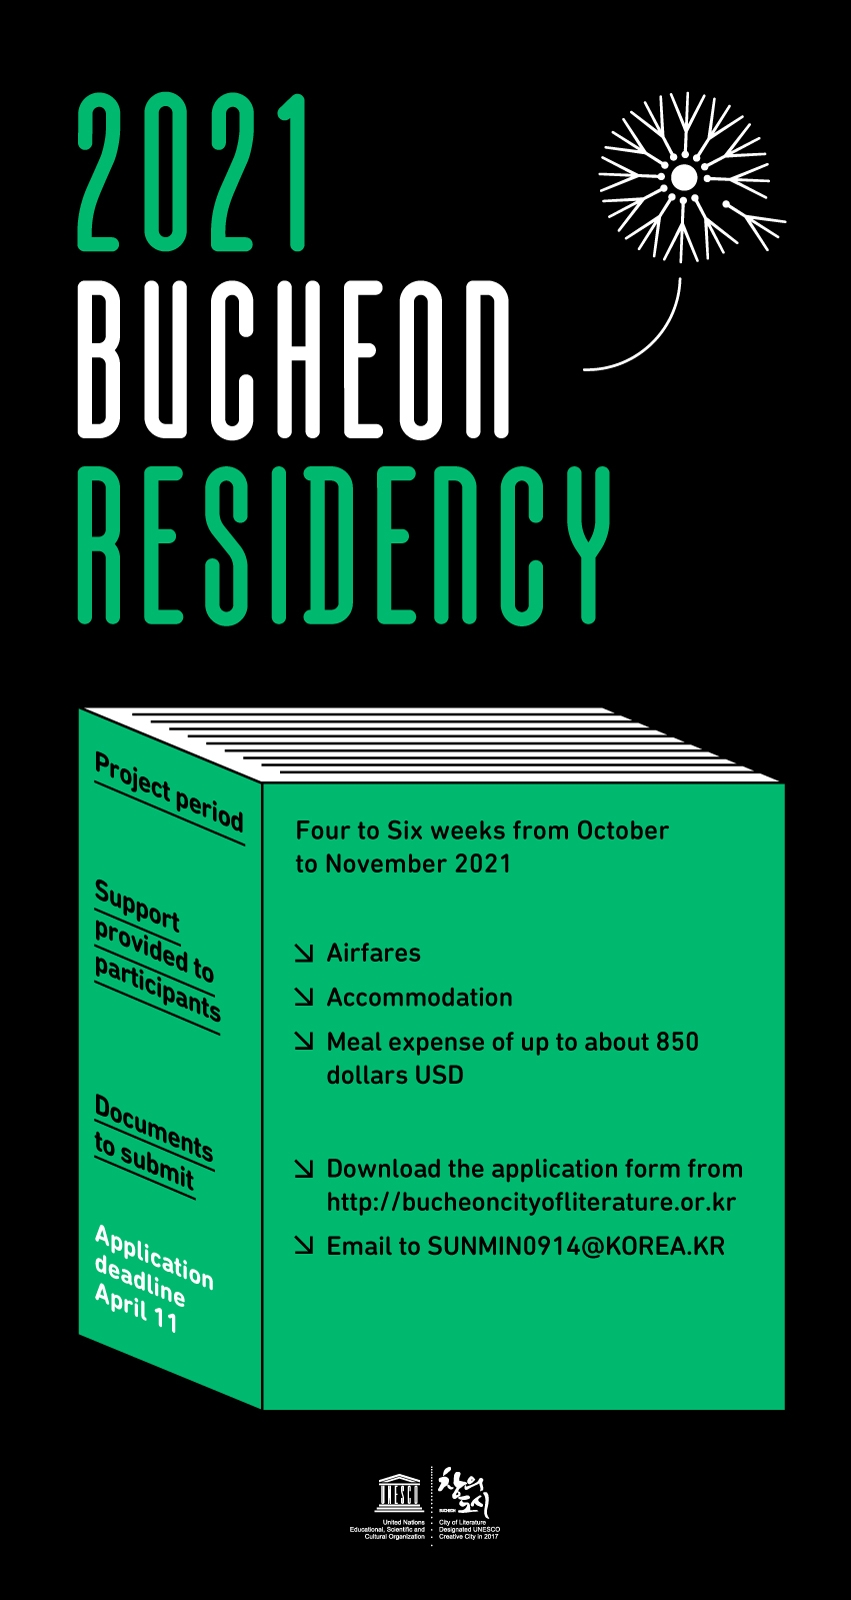 2021 BUCHEON Residency